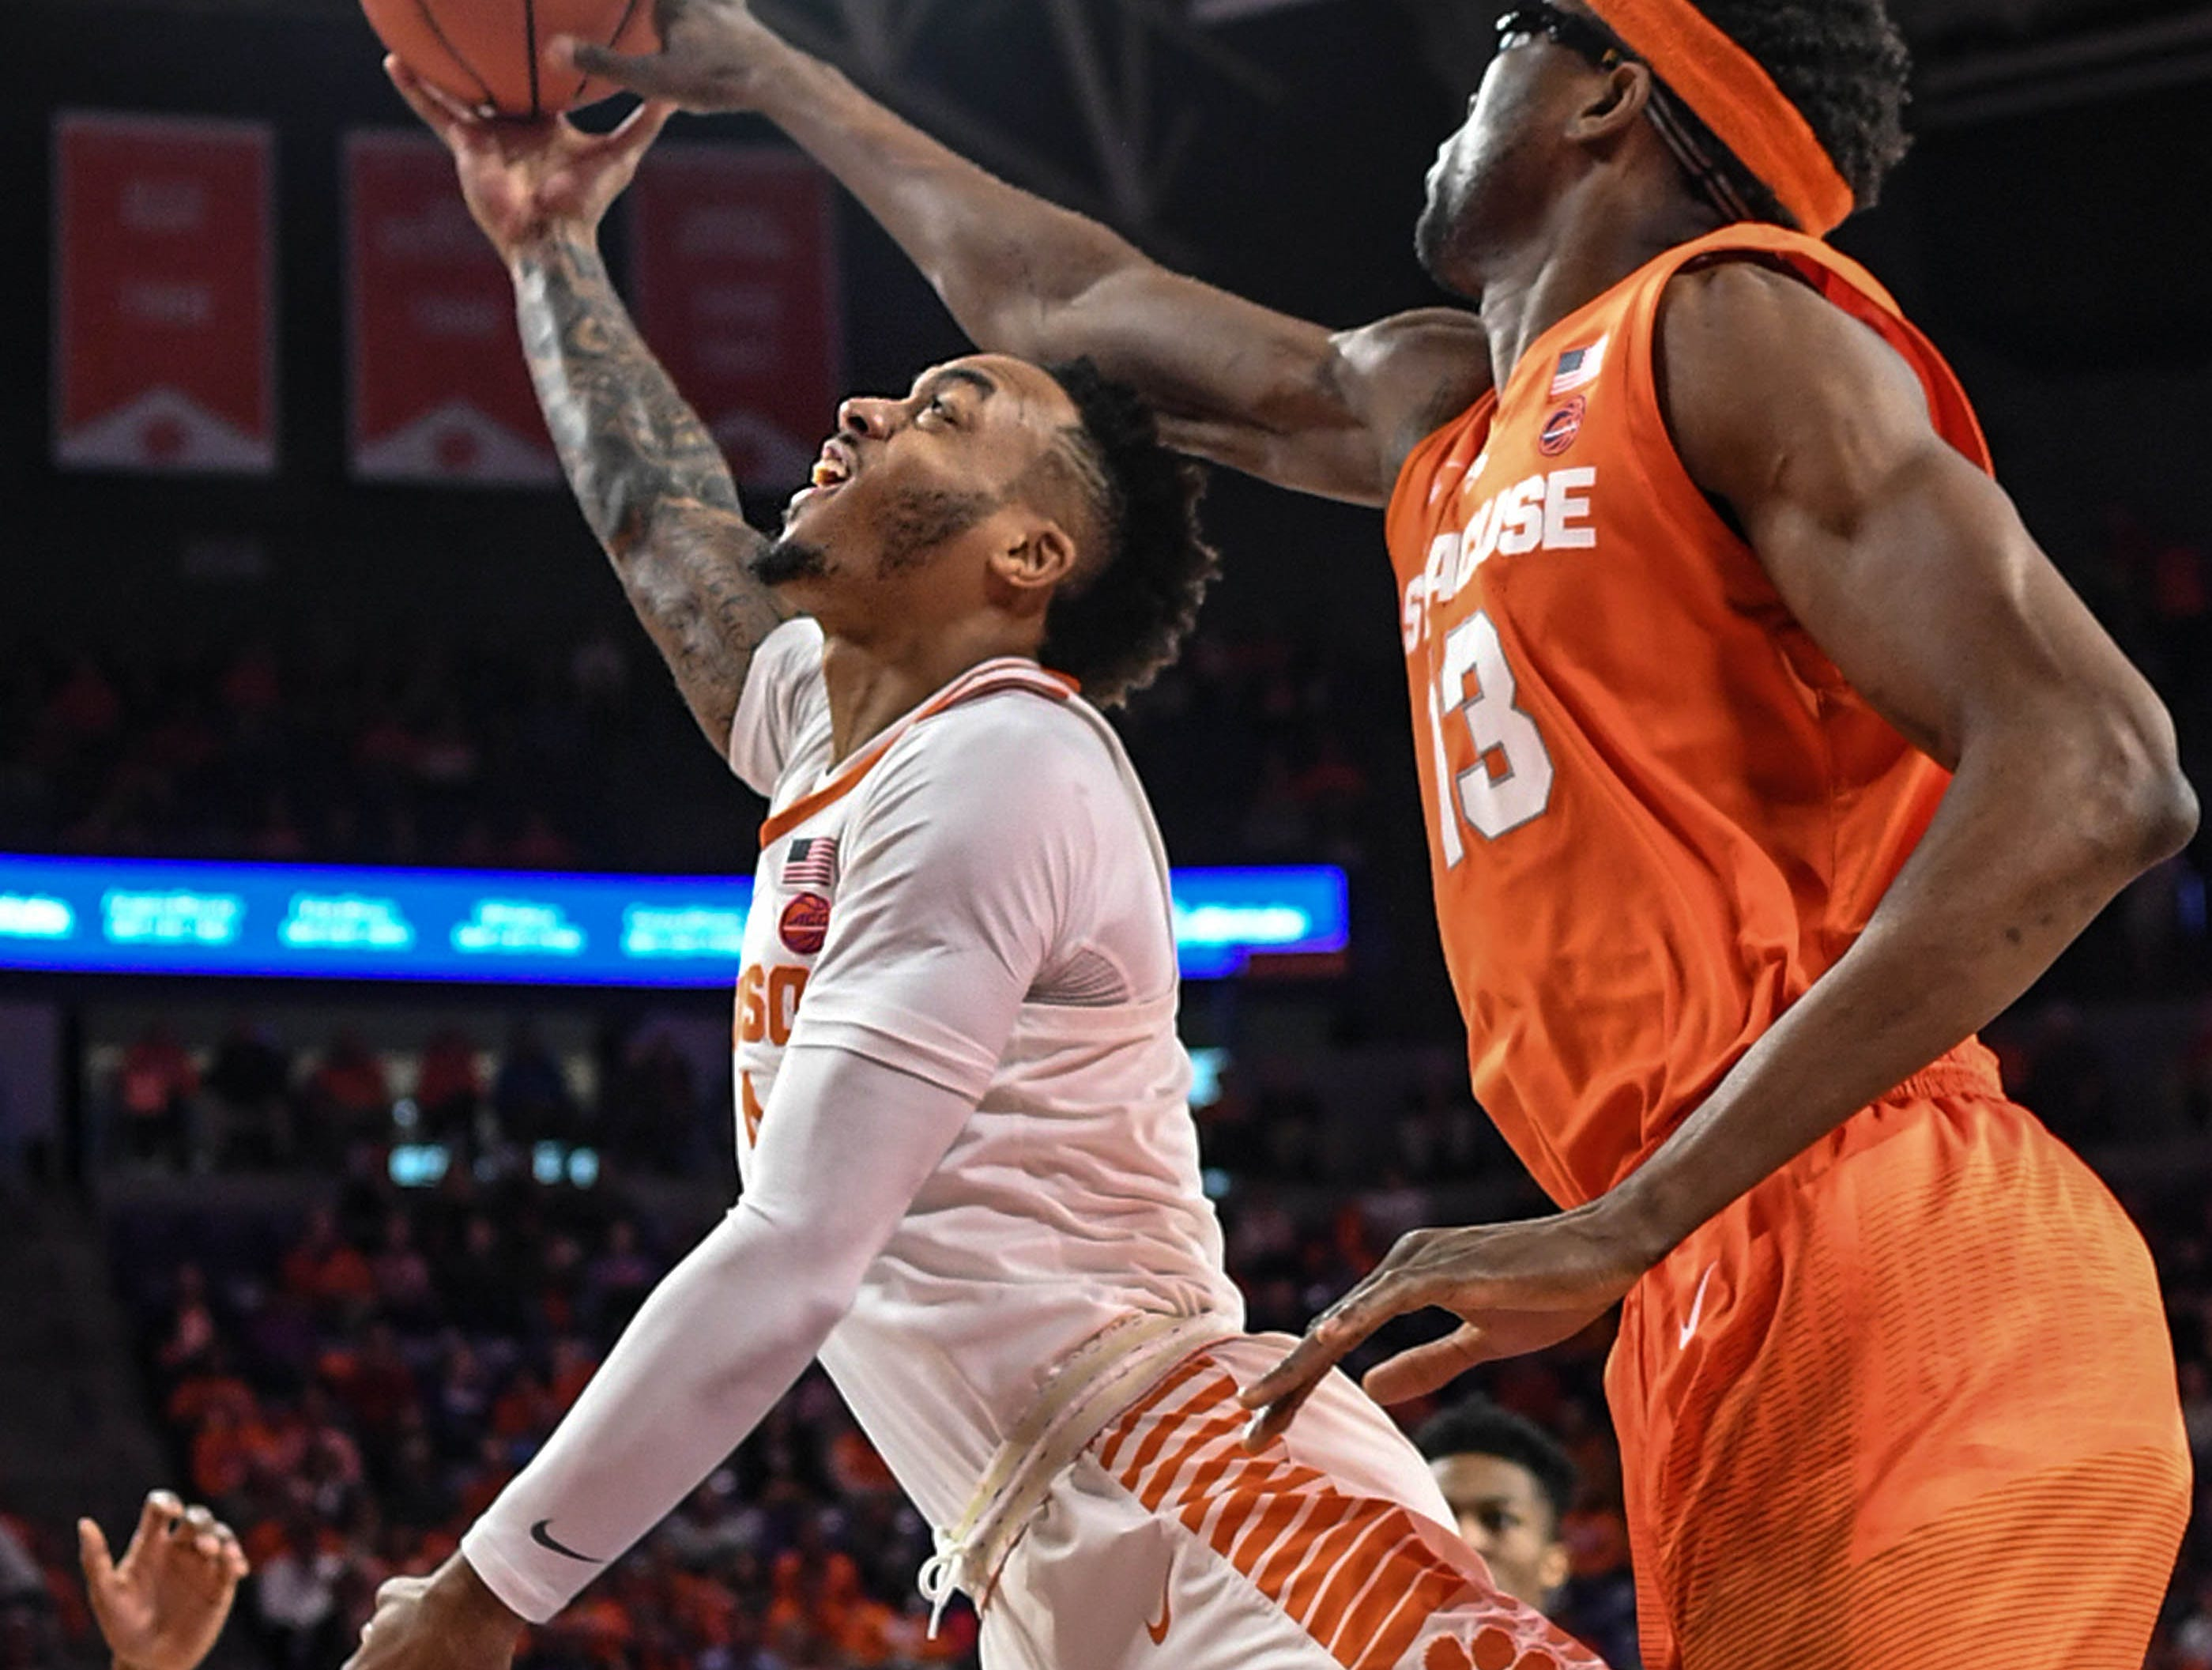 Clemson guard Marcquise Reed (2) has a shot blocked by Syracuse guard Frank Howard(23) during the first half in Littlejohn Coliseum in Clemson Saturday, March 9, 2019.